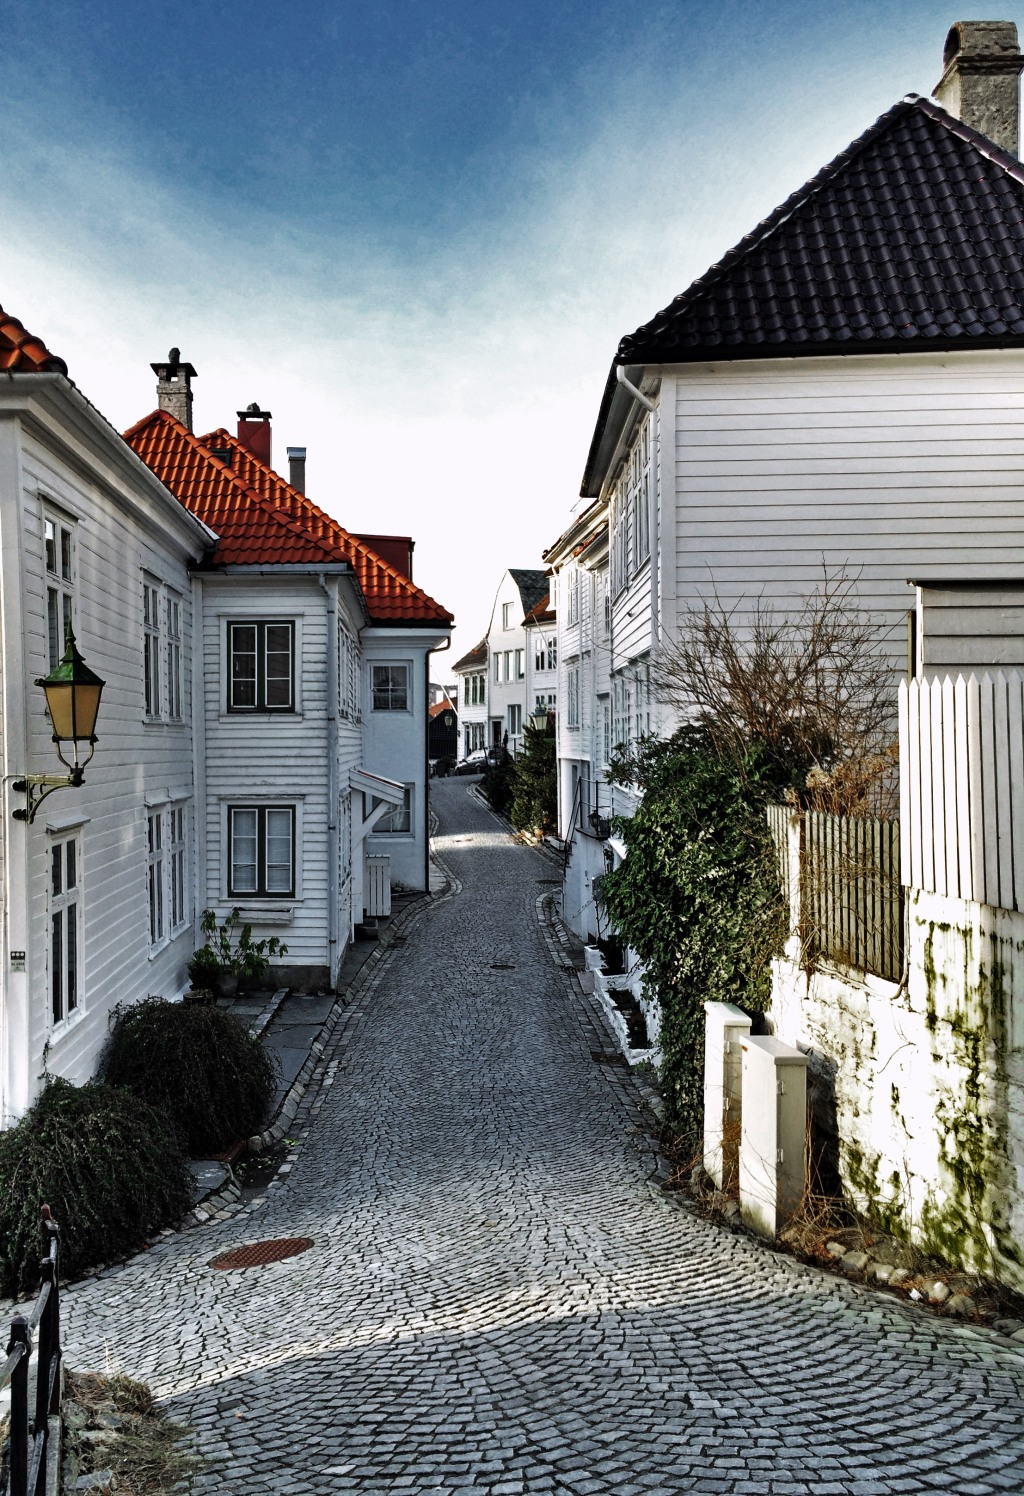 The cobblestone streets of Bergen, Norway. iPhone 5. ProHDR app.